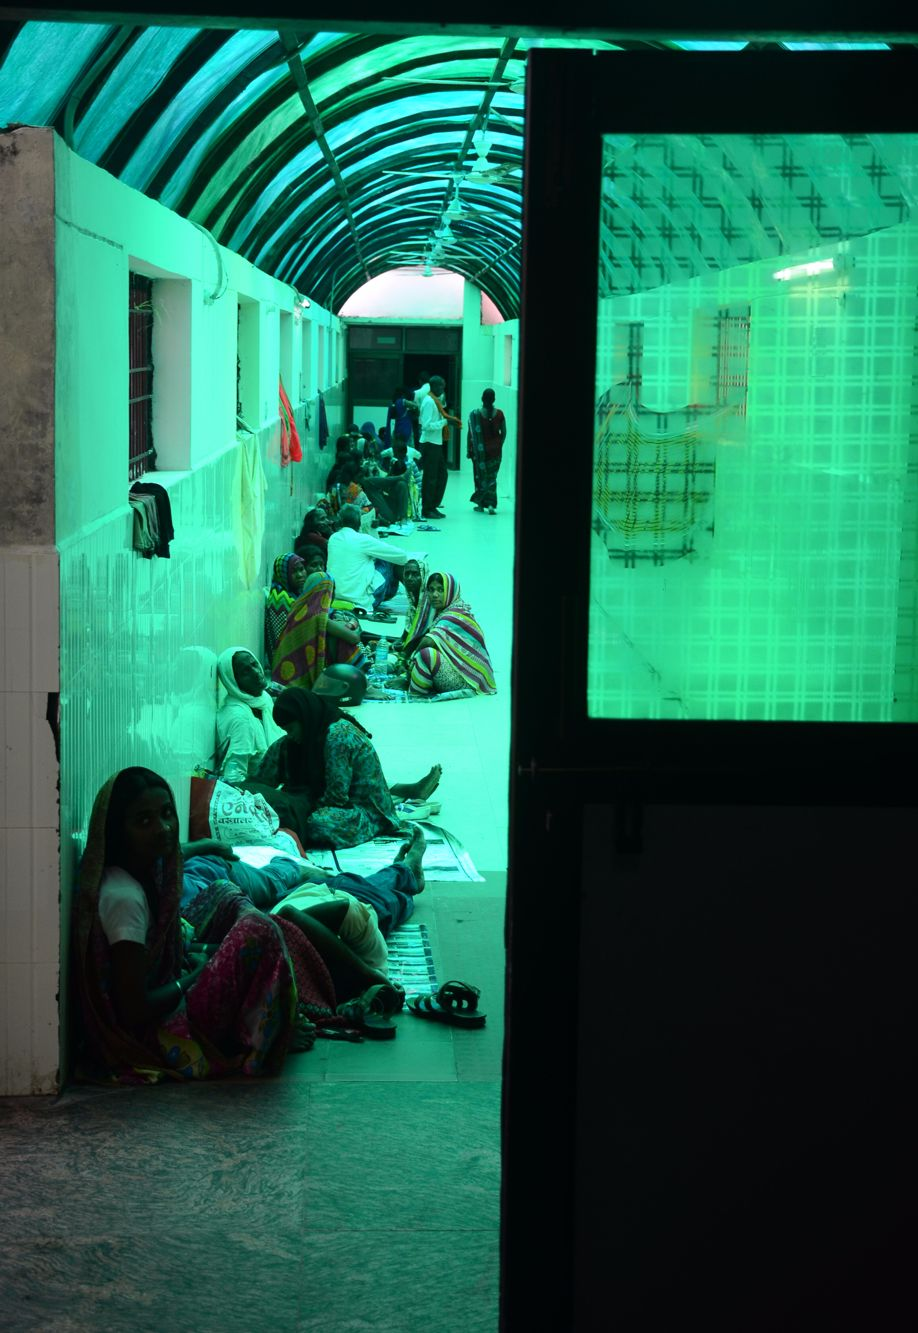 Crowds sitting in one of the numerous alleyways in the hospital, where most spend the night too